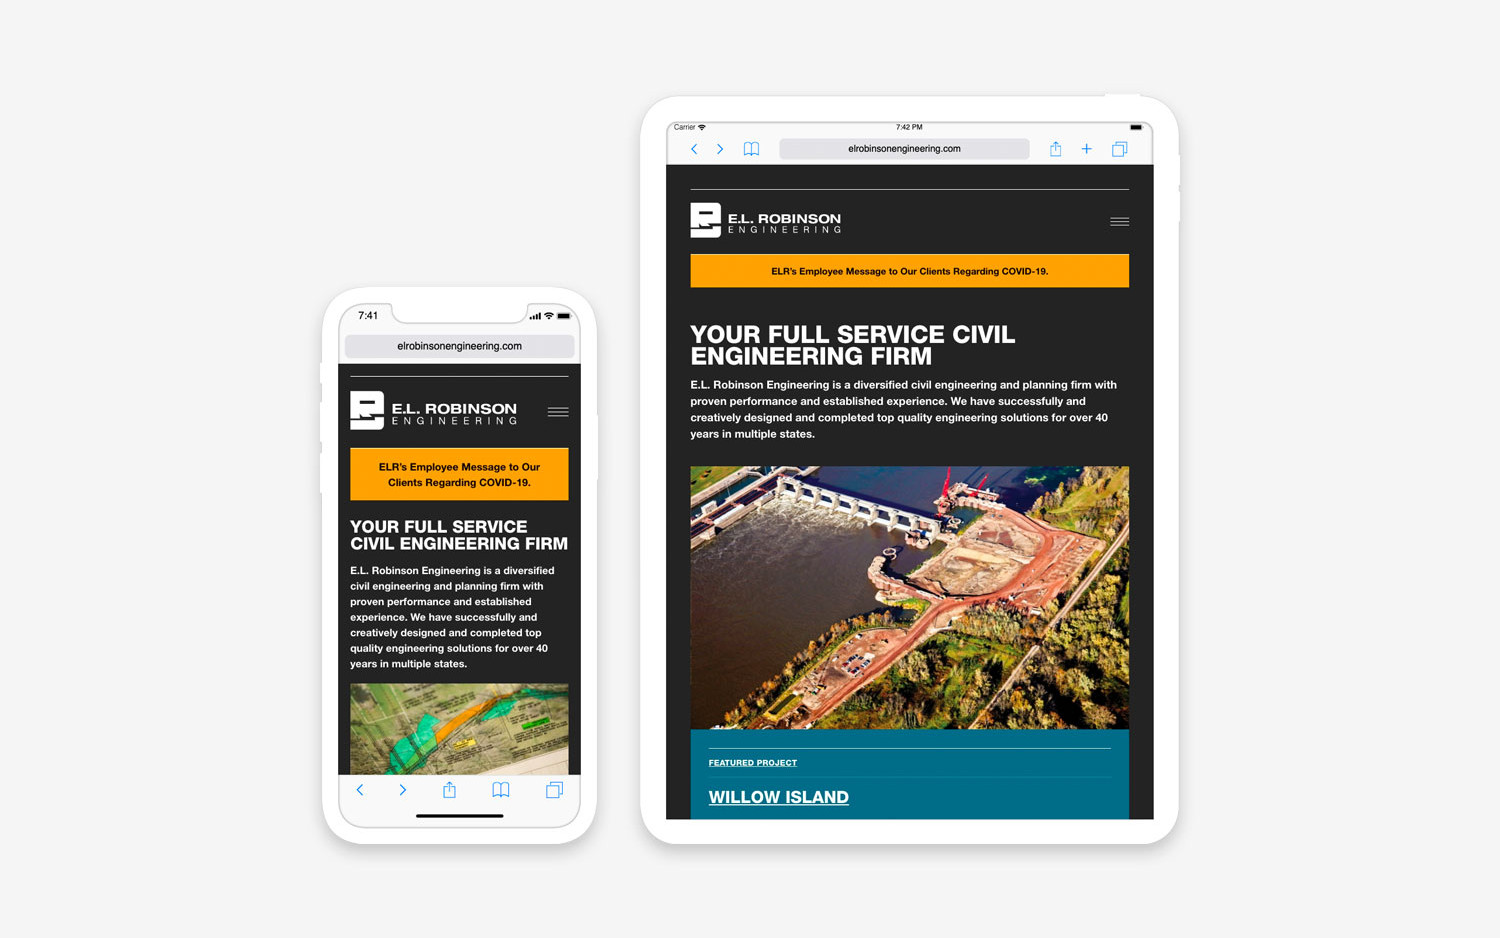 E.L. Robinson Engineering - Website mobile/tablet view